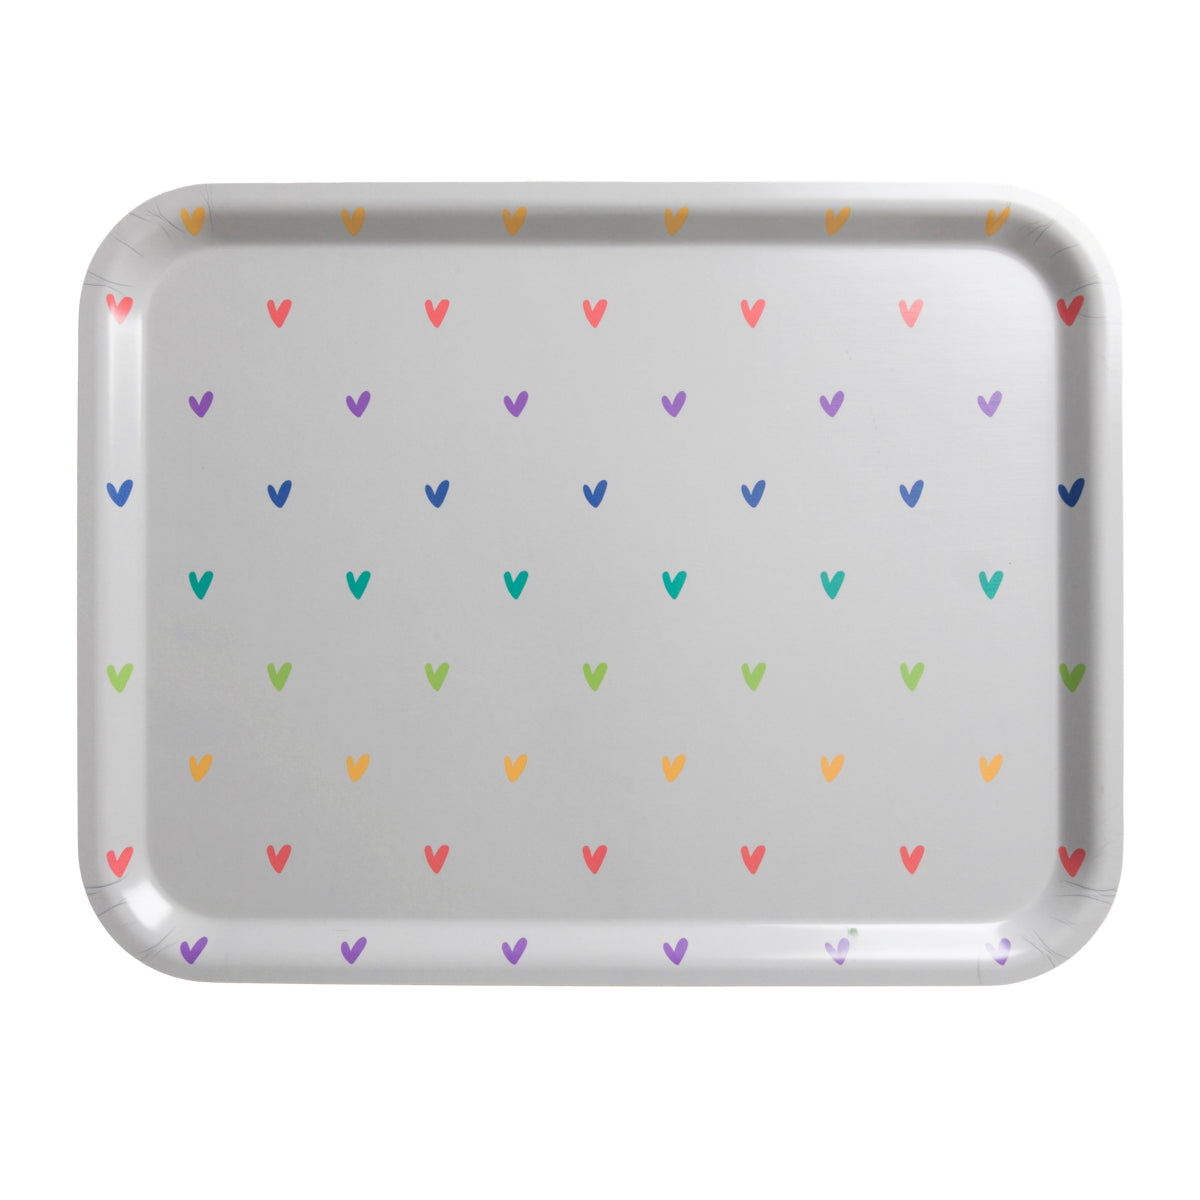 Hearts Printed Tray by Sophie Allport